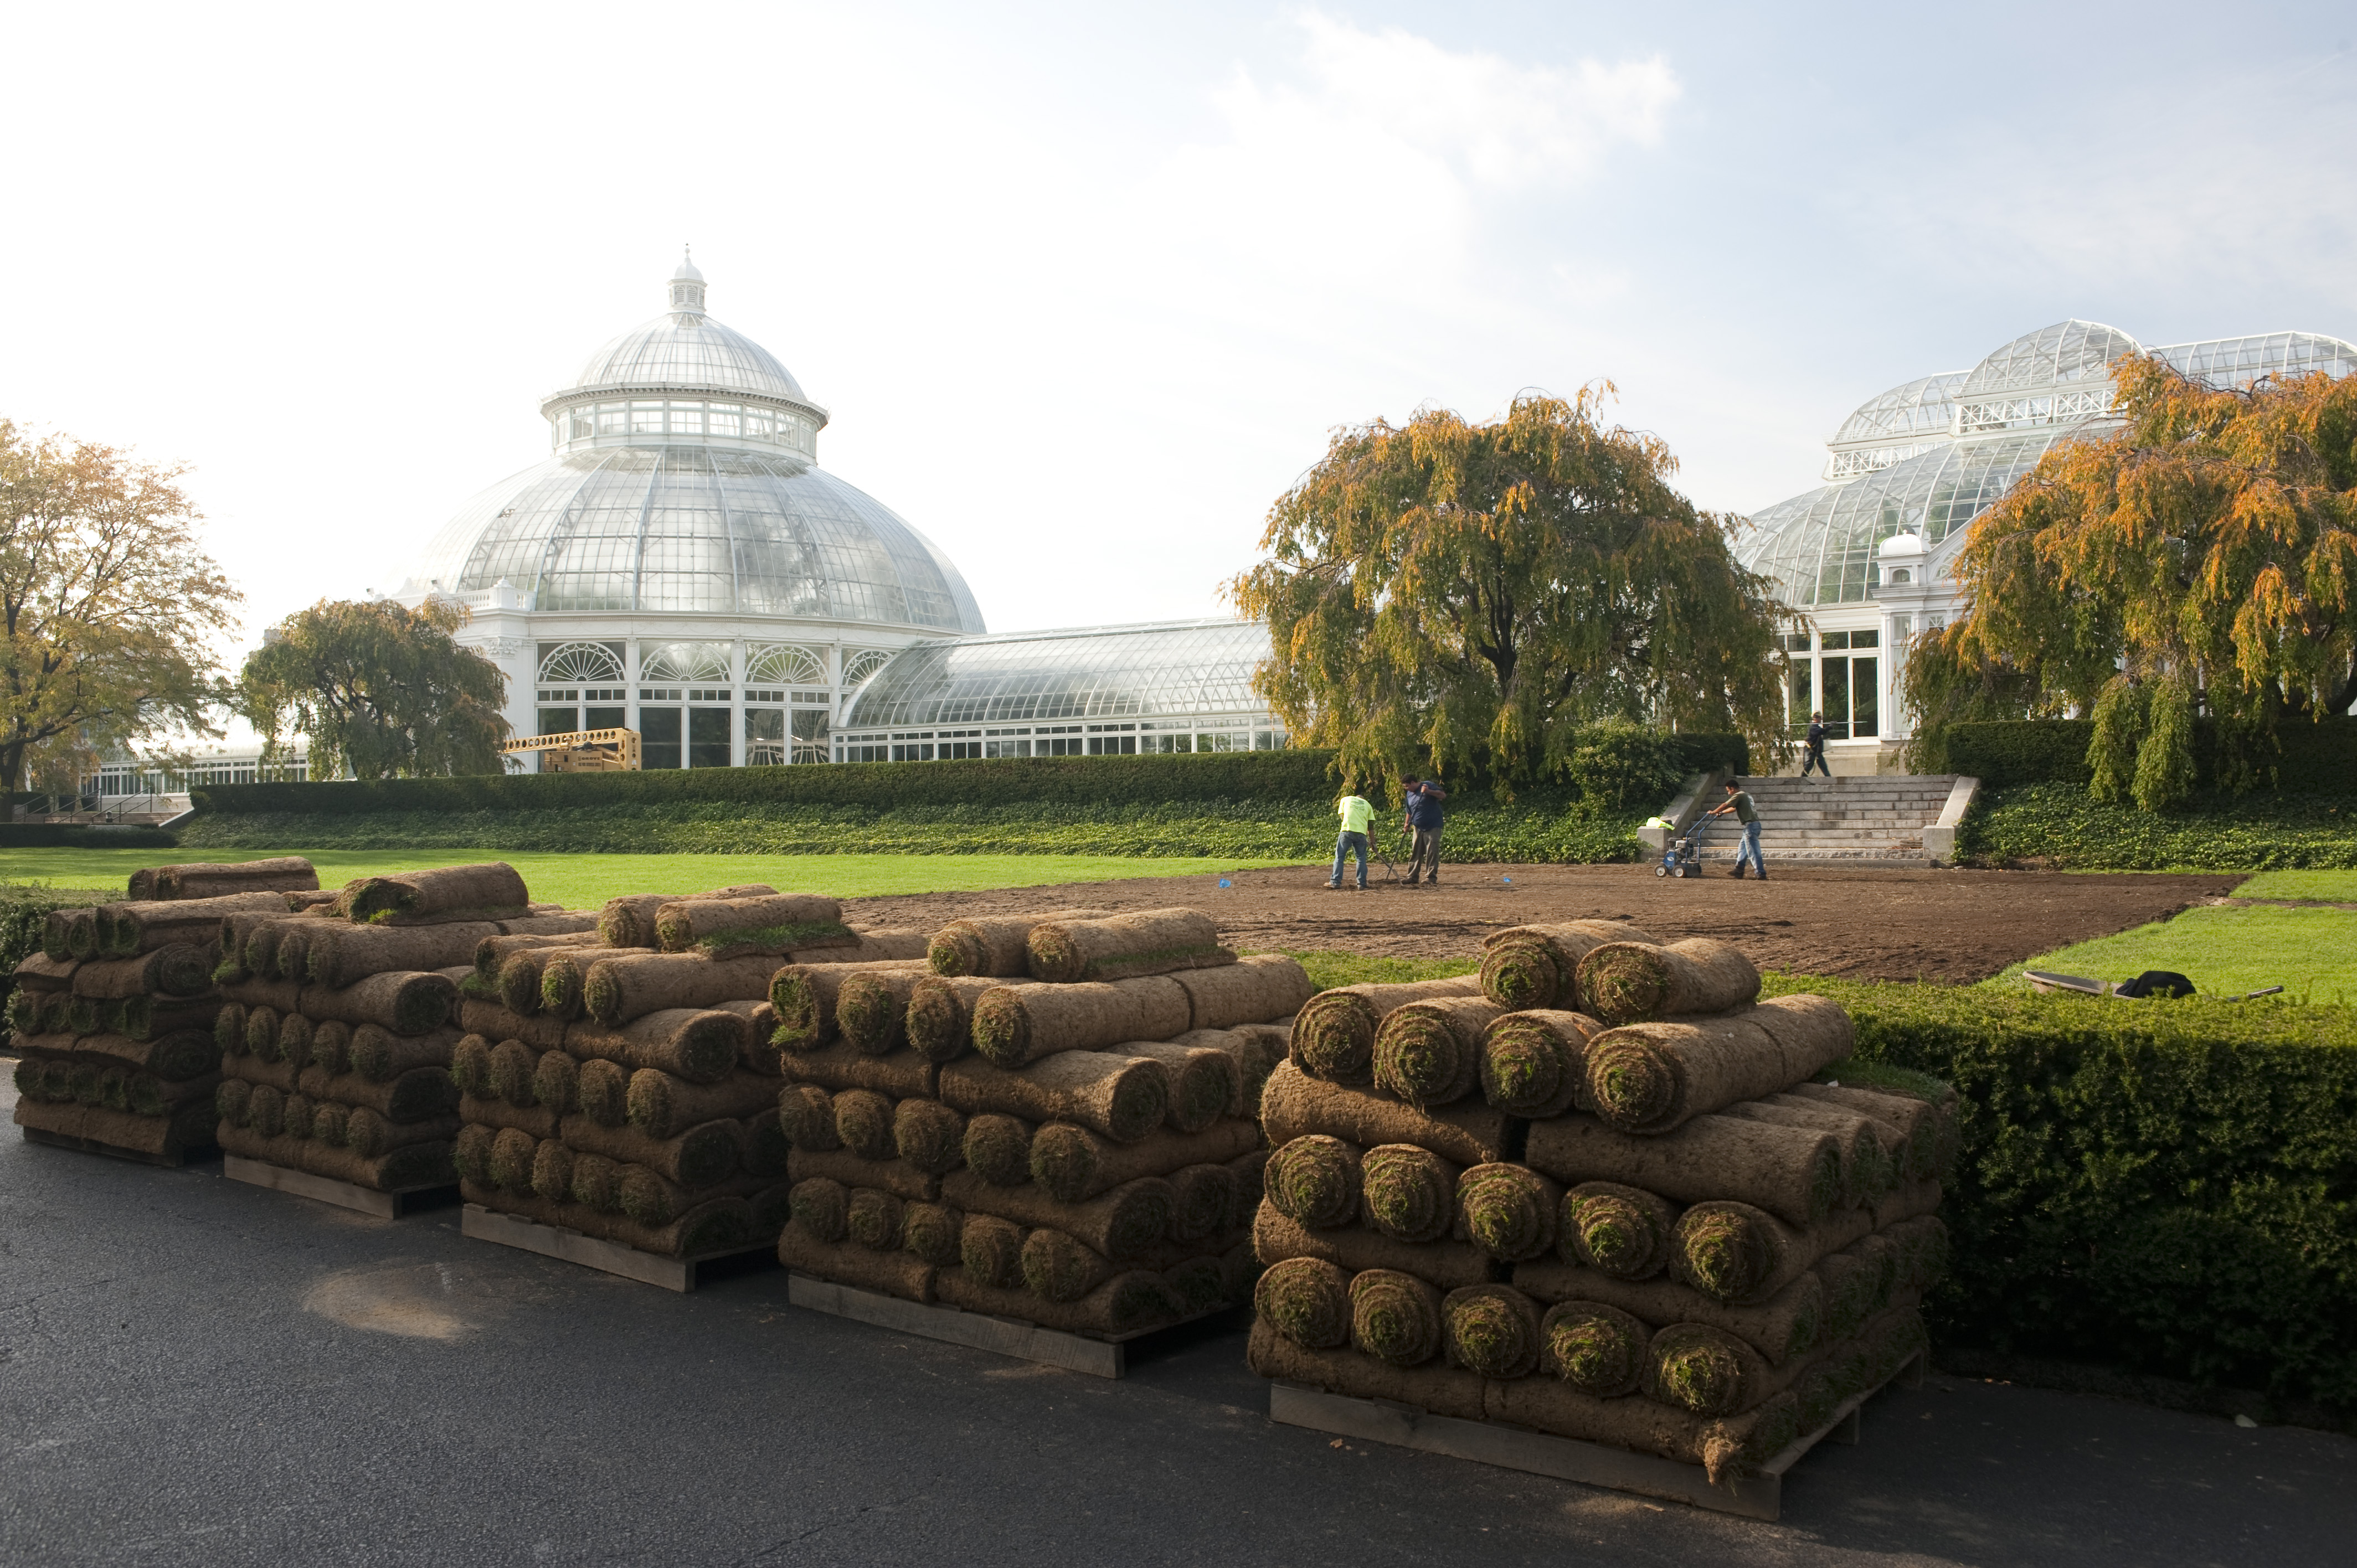 Plant Talk - Page 358 of 421 - Inside The New York Botanical Garden